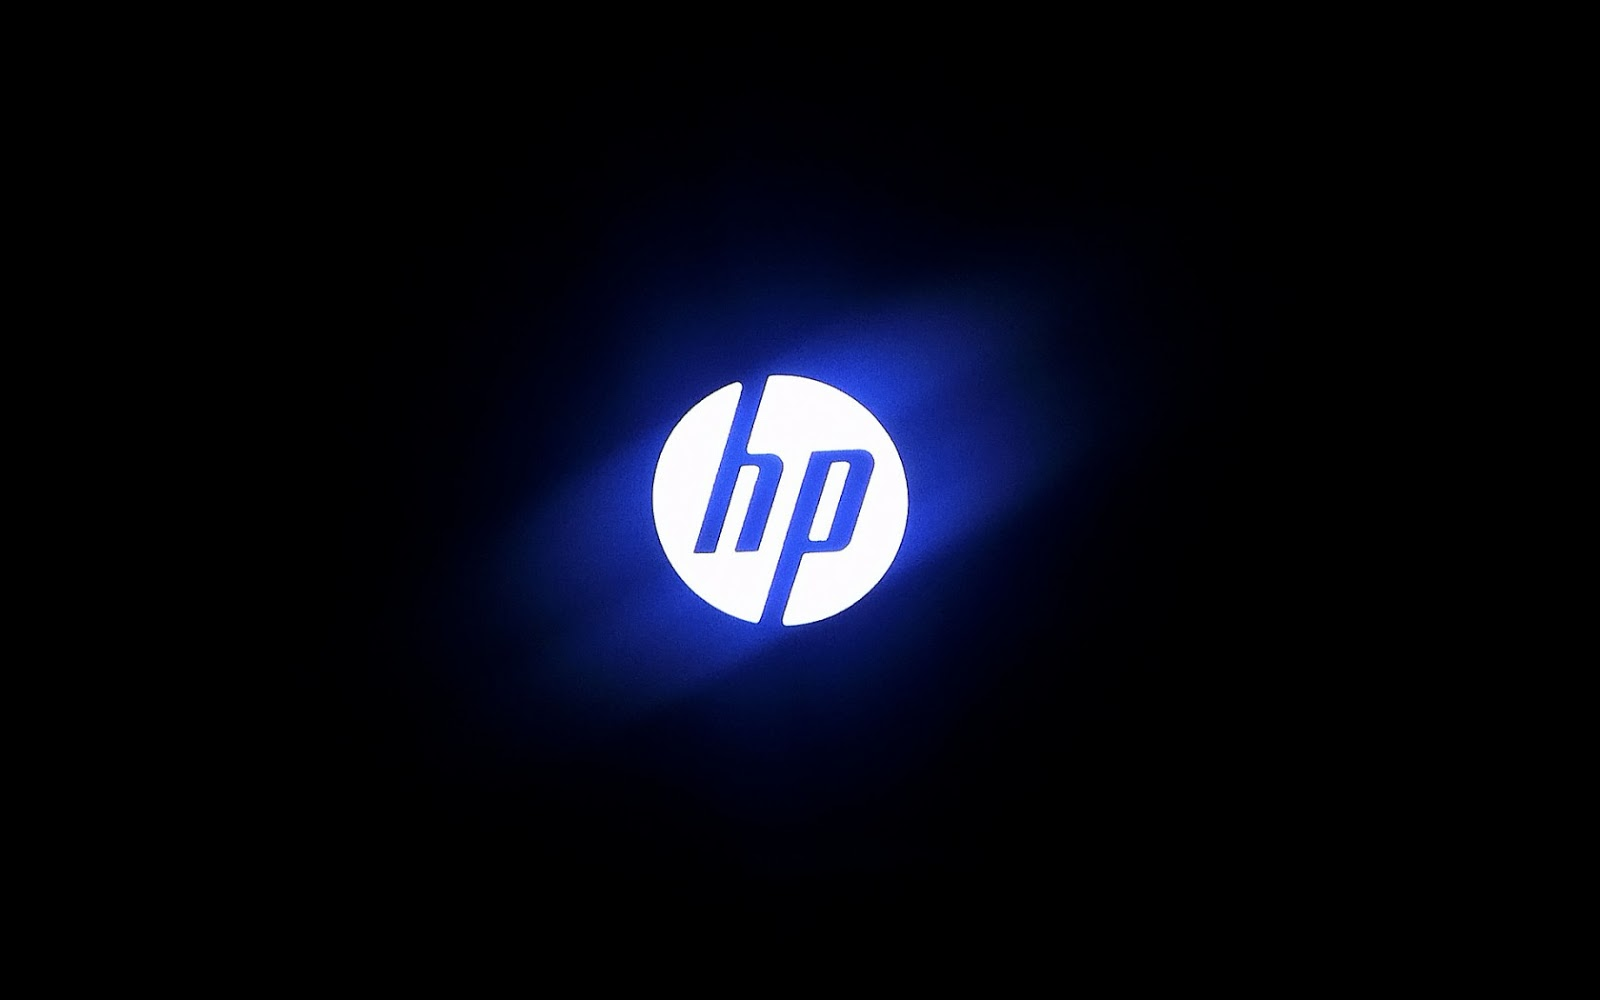 HP Desktop Wallpapers in HD - WallpaperSafari